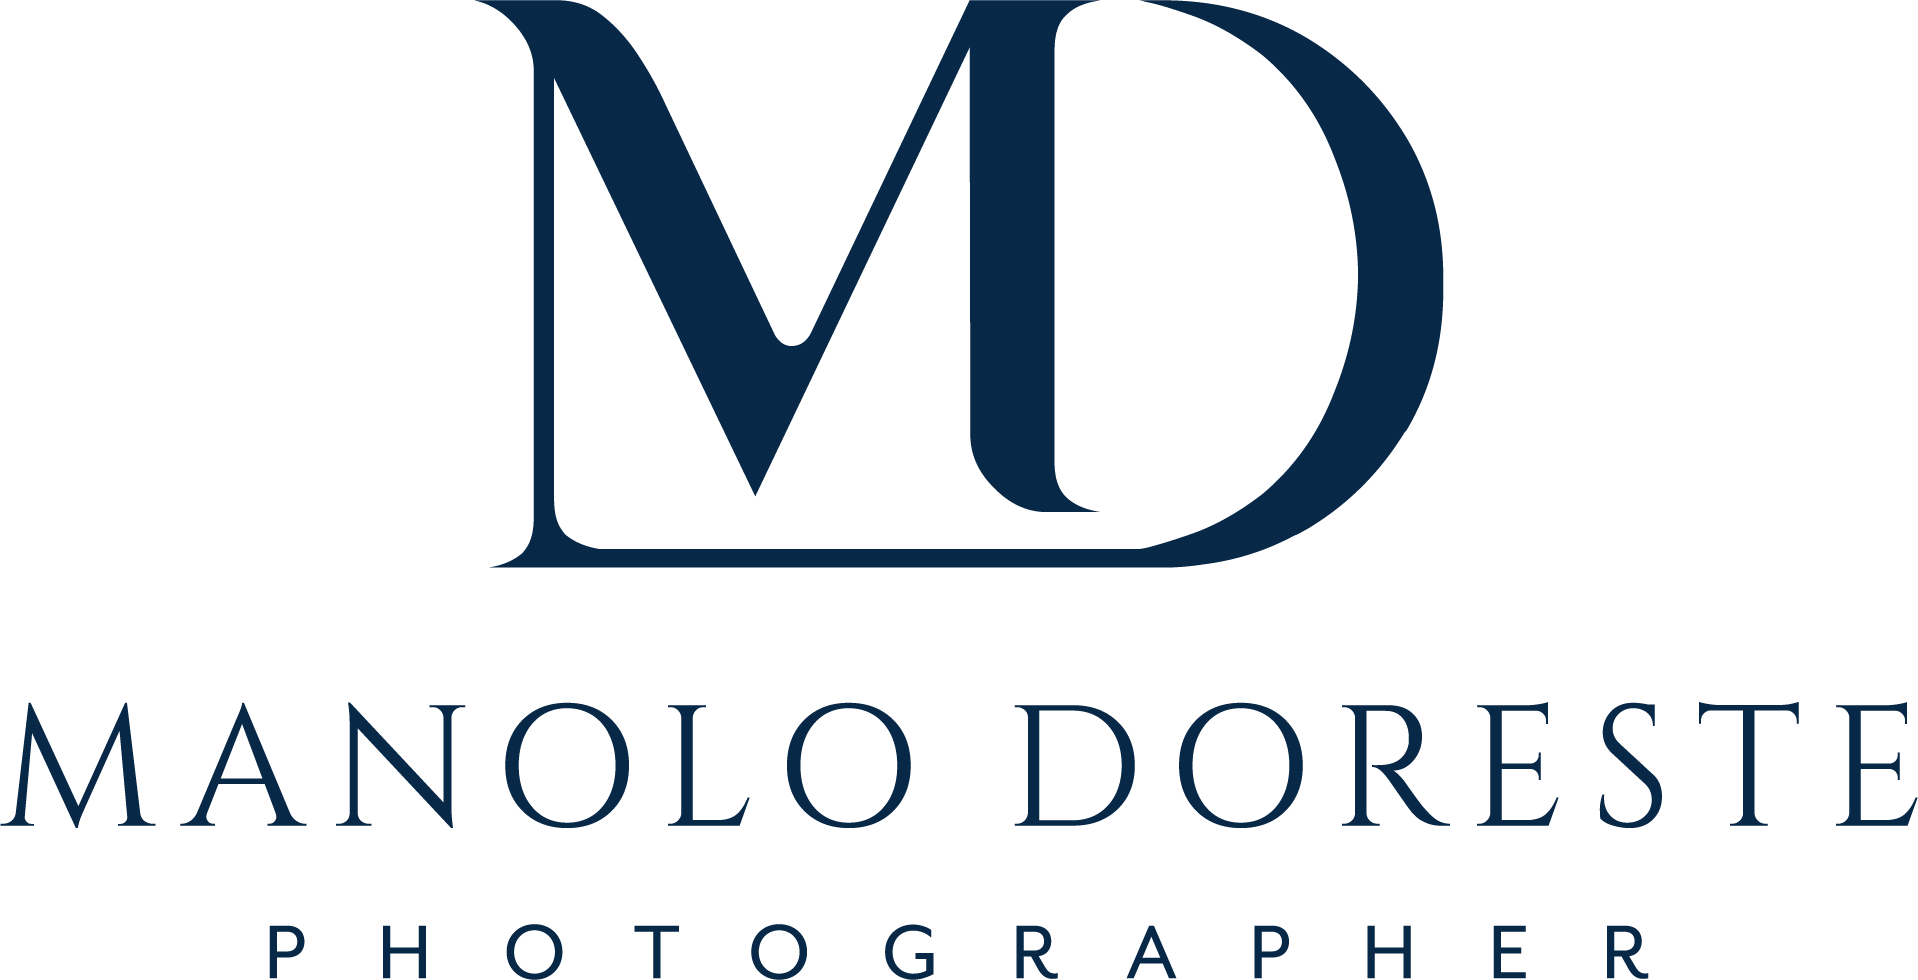 Manolo Doreste Wedding and Portrait Photographer i